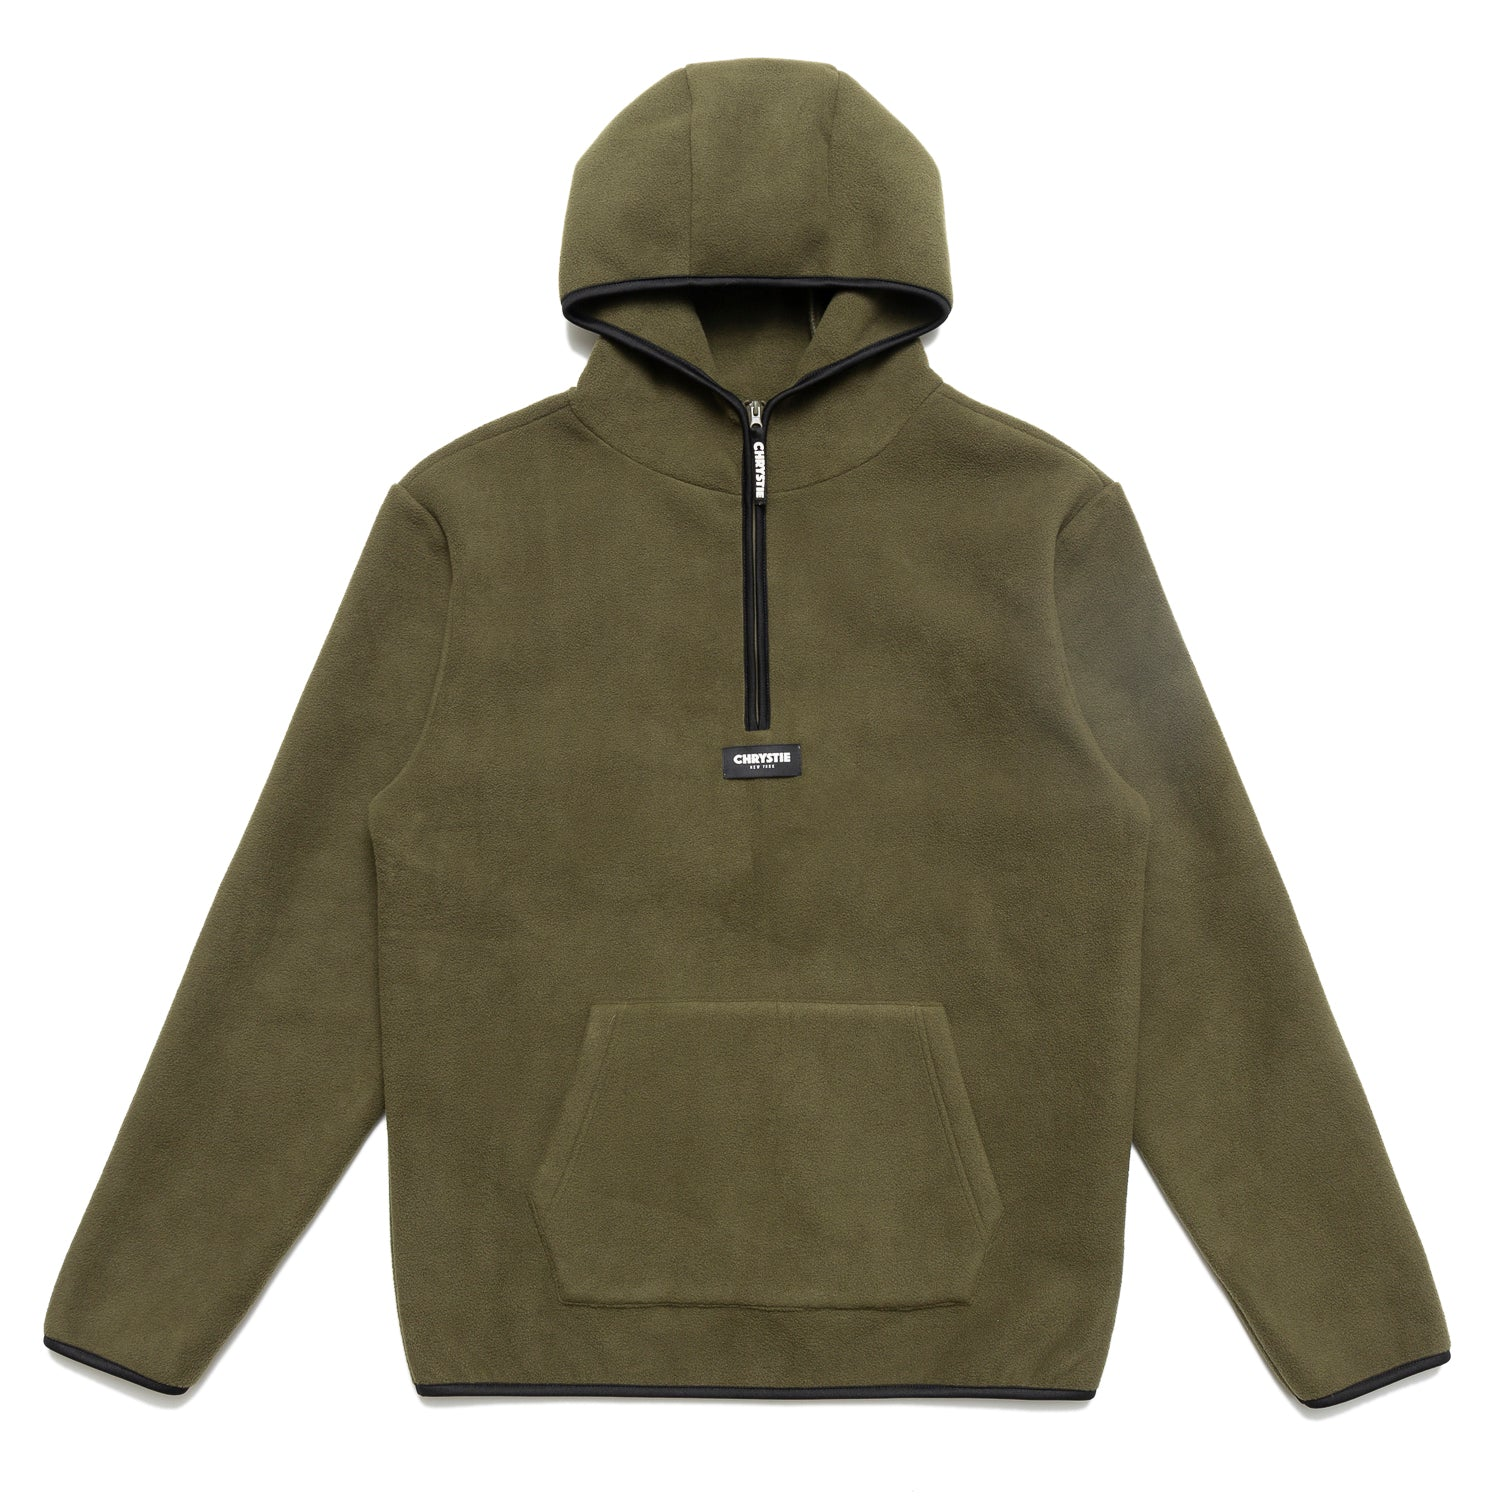 Load image into Gallery viewer, Chrystie OG Logo Polar Fleece Pullover Hoodie